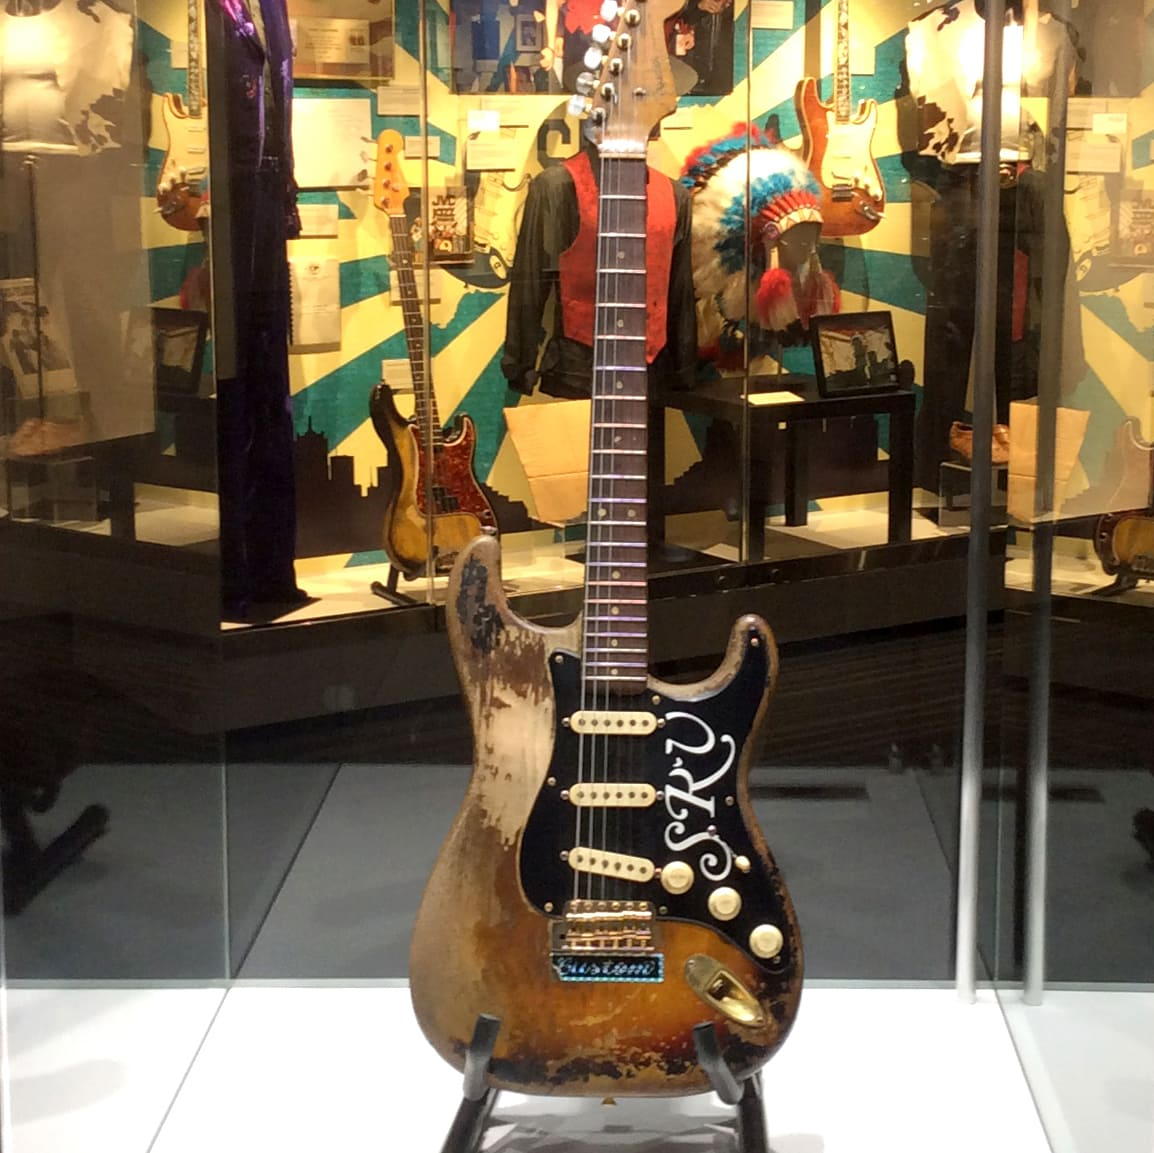 Pride & Joy: The Texas Blues of Stevie Ray Vaughan Number One Fender Stratorcaster